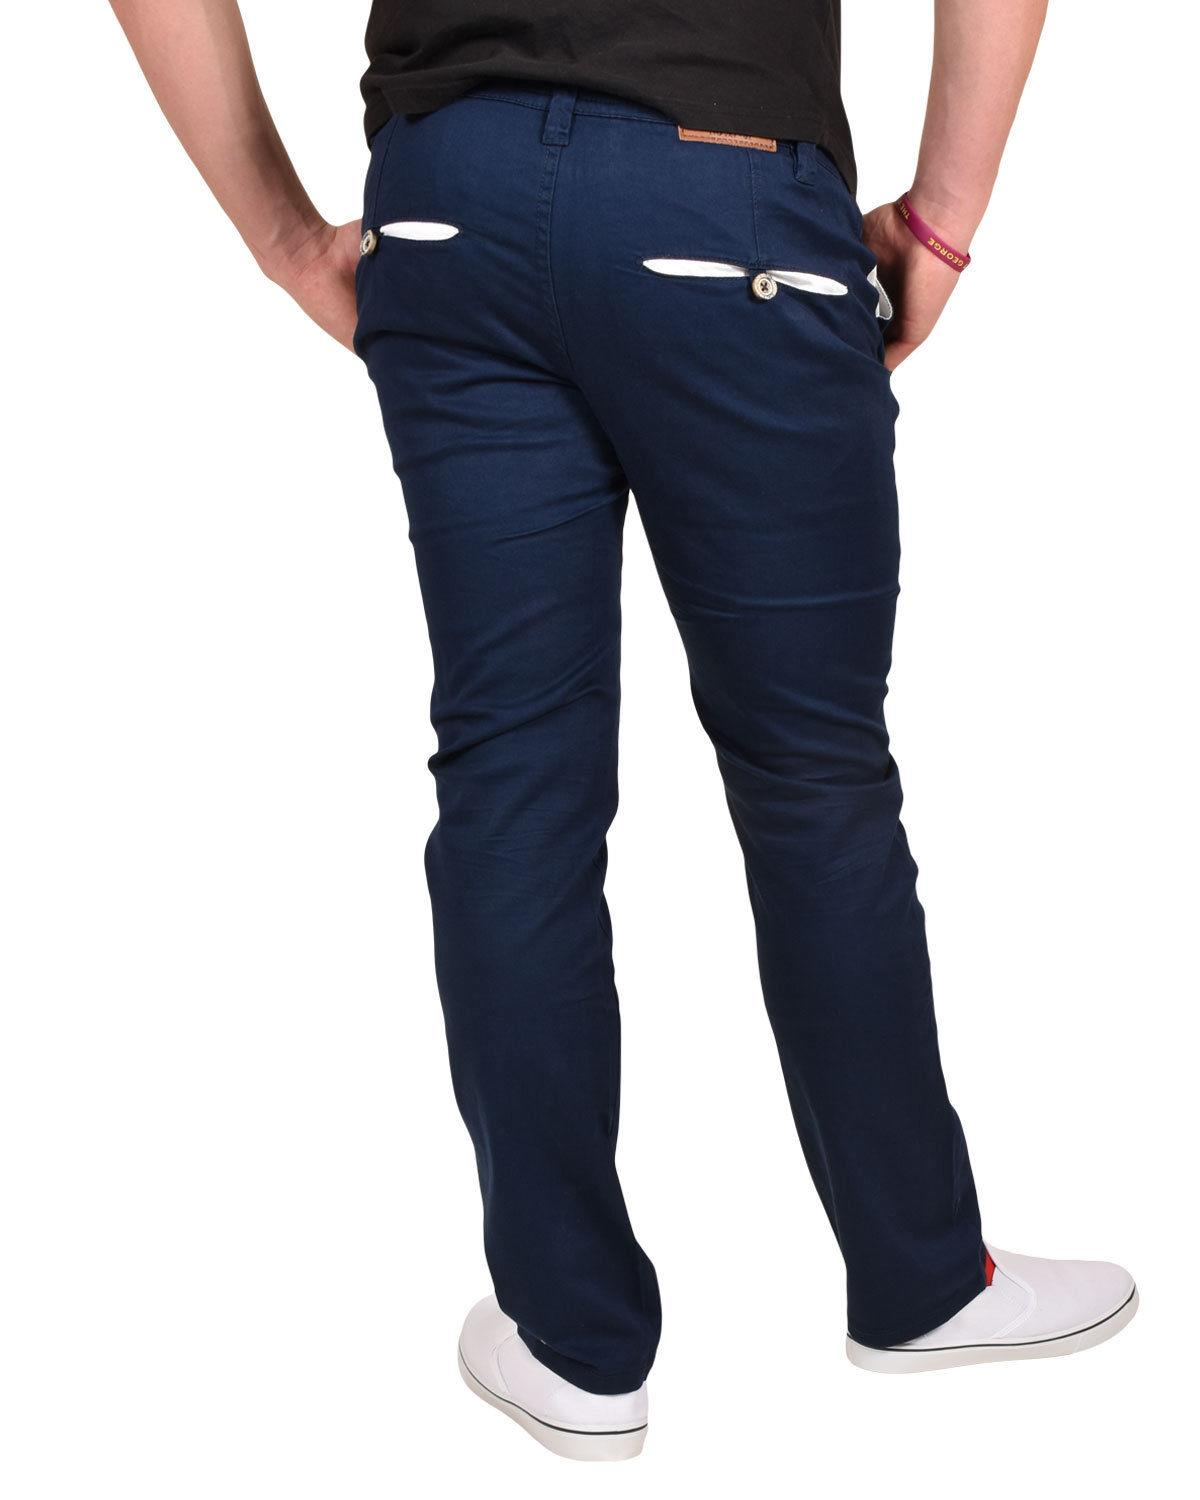 New-Mens-Designer-Jacksouth-Chino-Regular-Fit-Stretch-Cotton-Rich-Twill-Trousers thumbnail 23